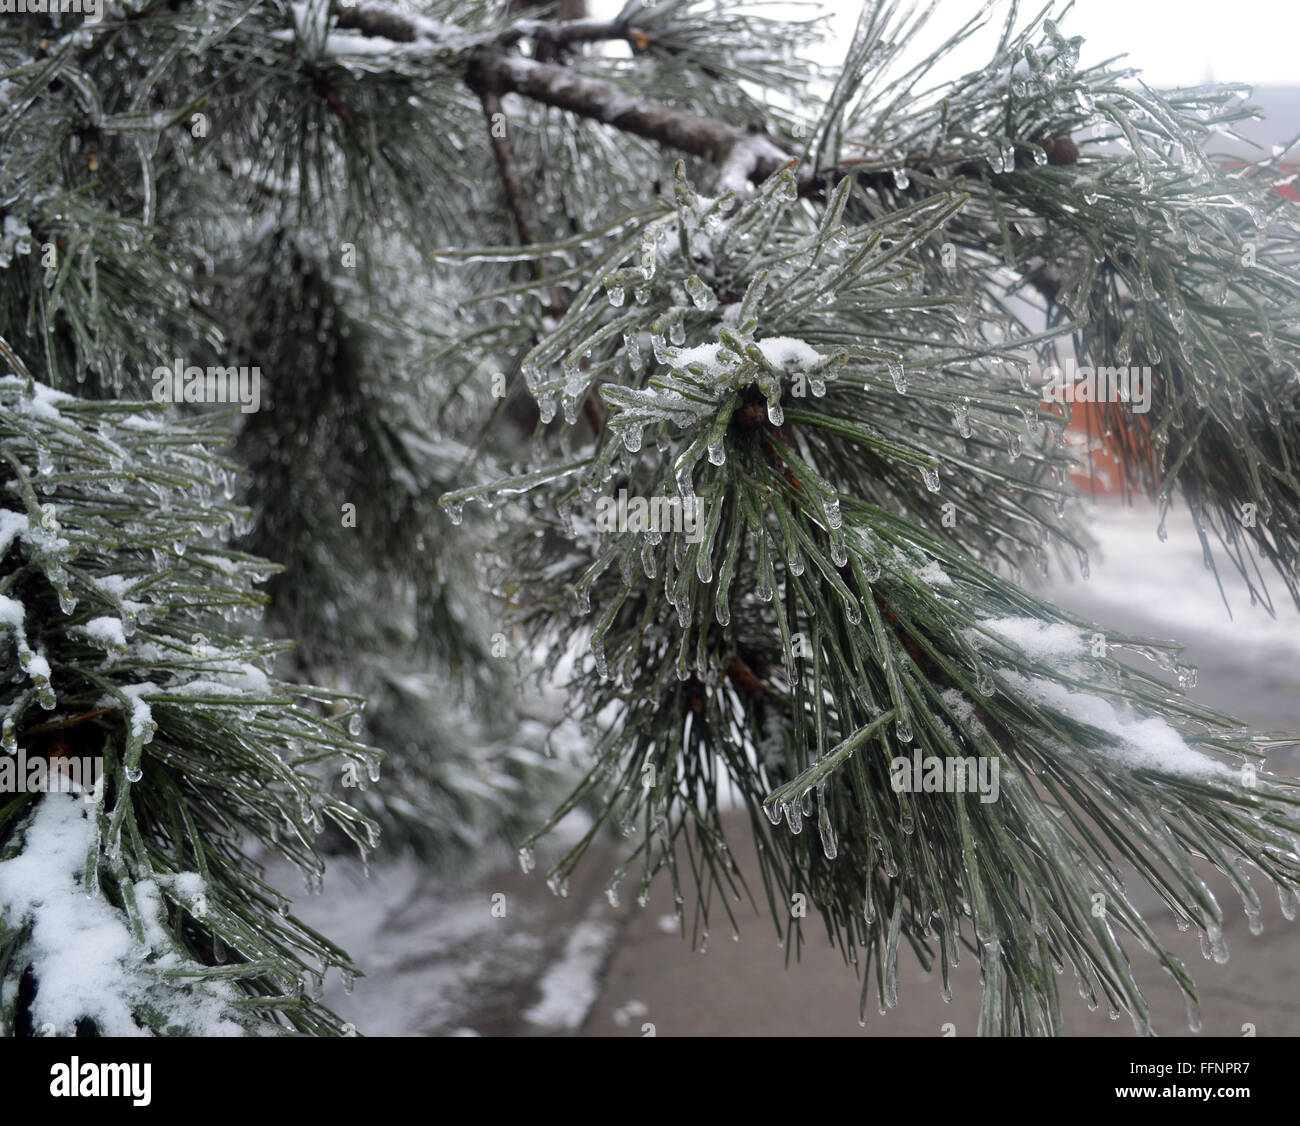 Frozen pine tree branch covered with ice - Stock Image